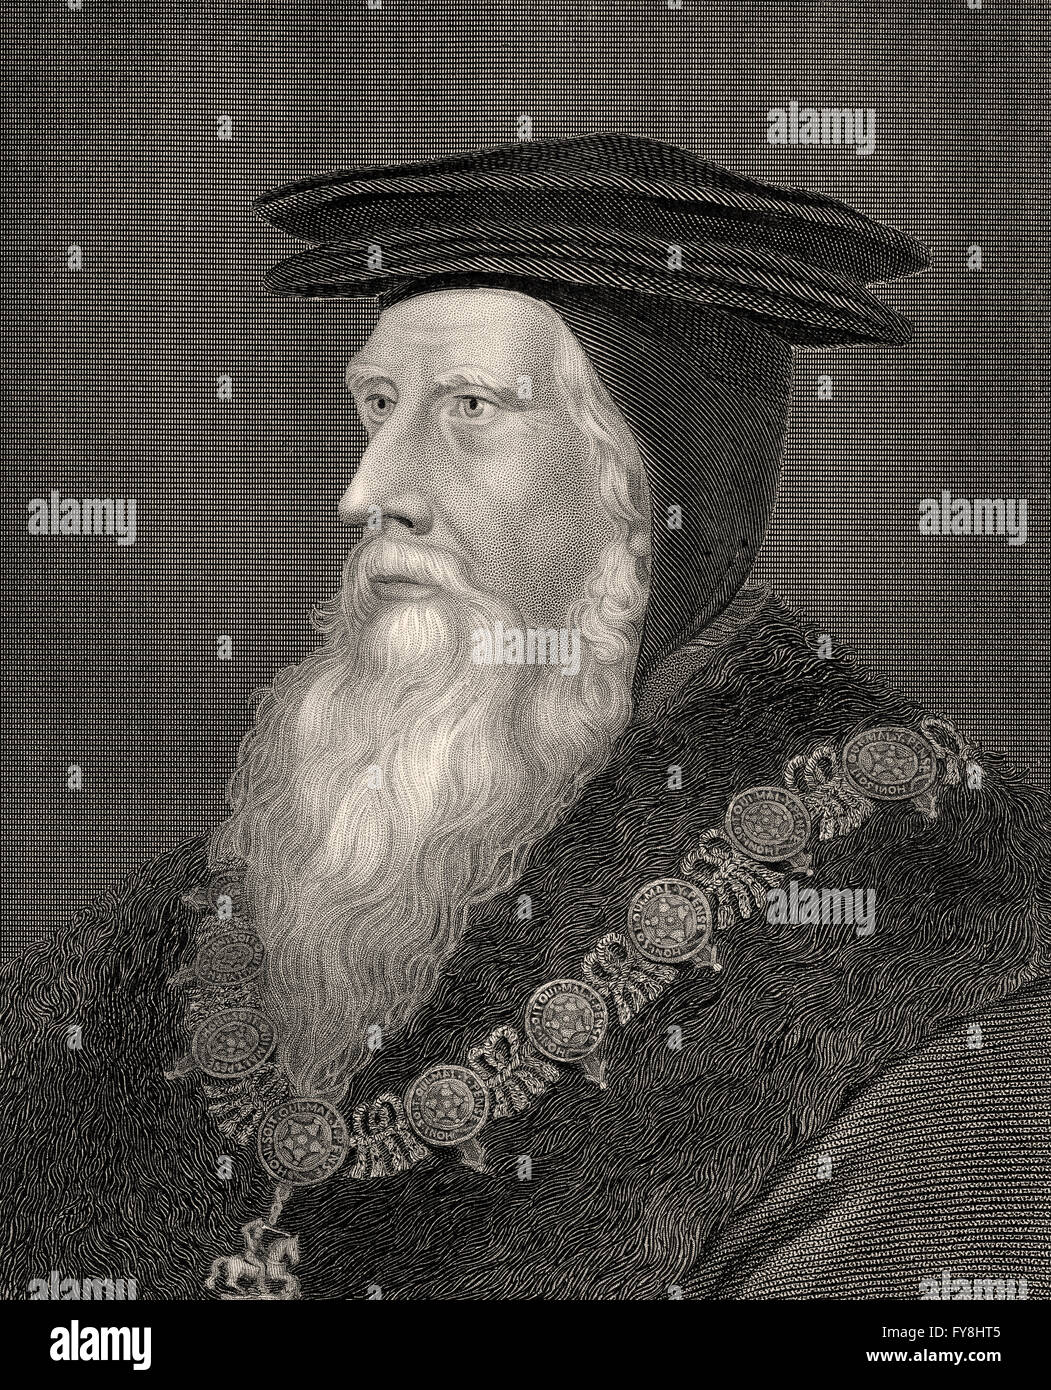 John Russell, 1st Earl of Bedfordc. 1485-1554/1555, an English royal minister in the Tudor era - Stock Image